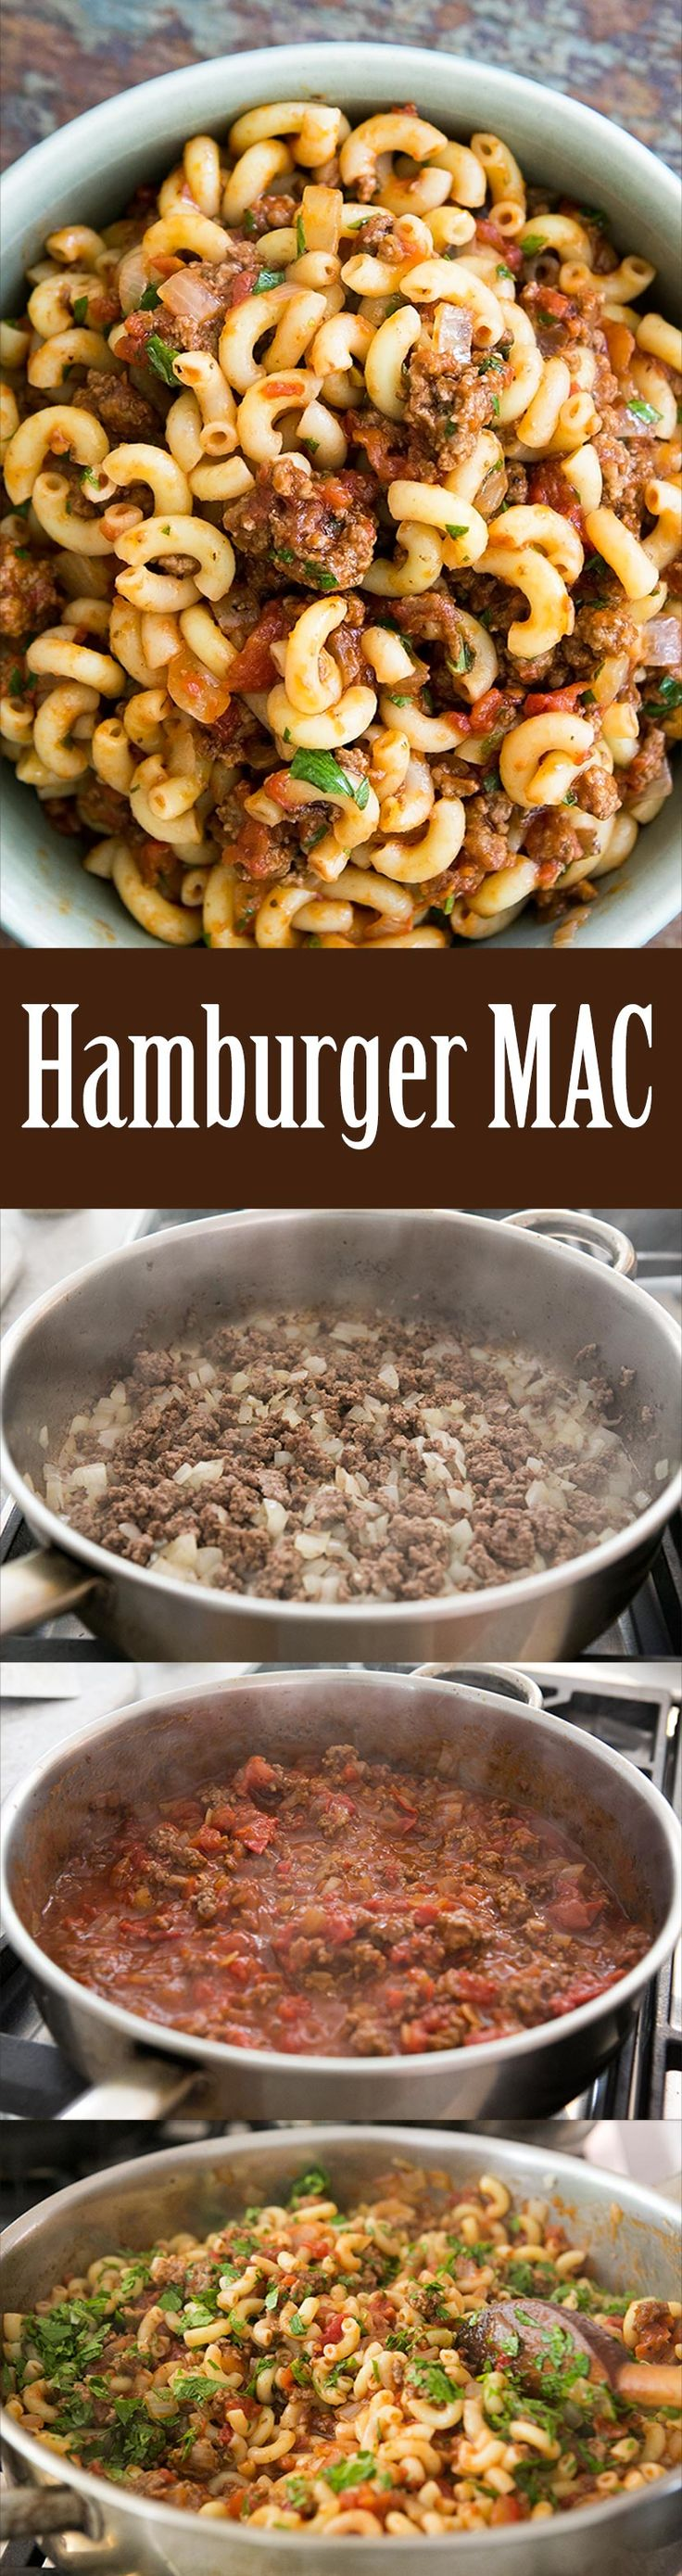 Hamburger Mac! So EASY, takes less than 30 minutes start to finish. Ground beef, onions, tomato sauce, macaroni. Your family will LOVE this. Perfect midweek meal. On SimplyRecipes.com